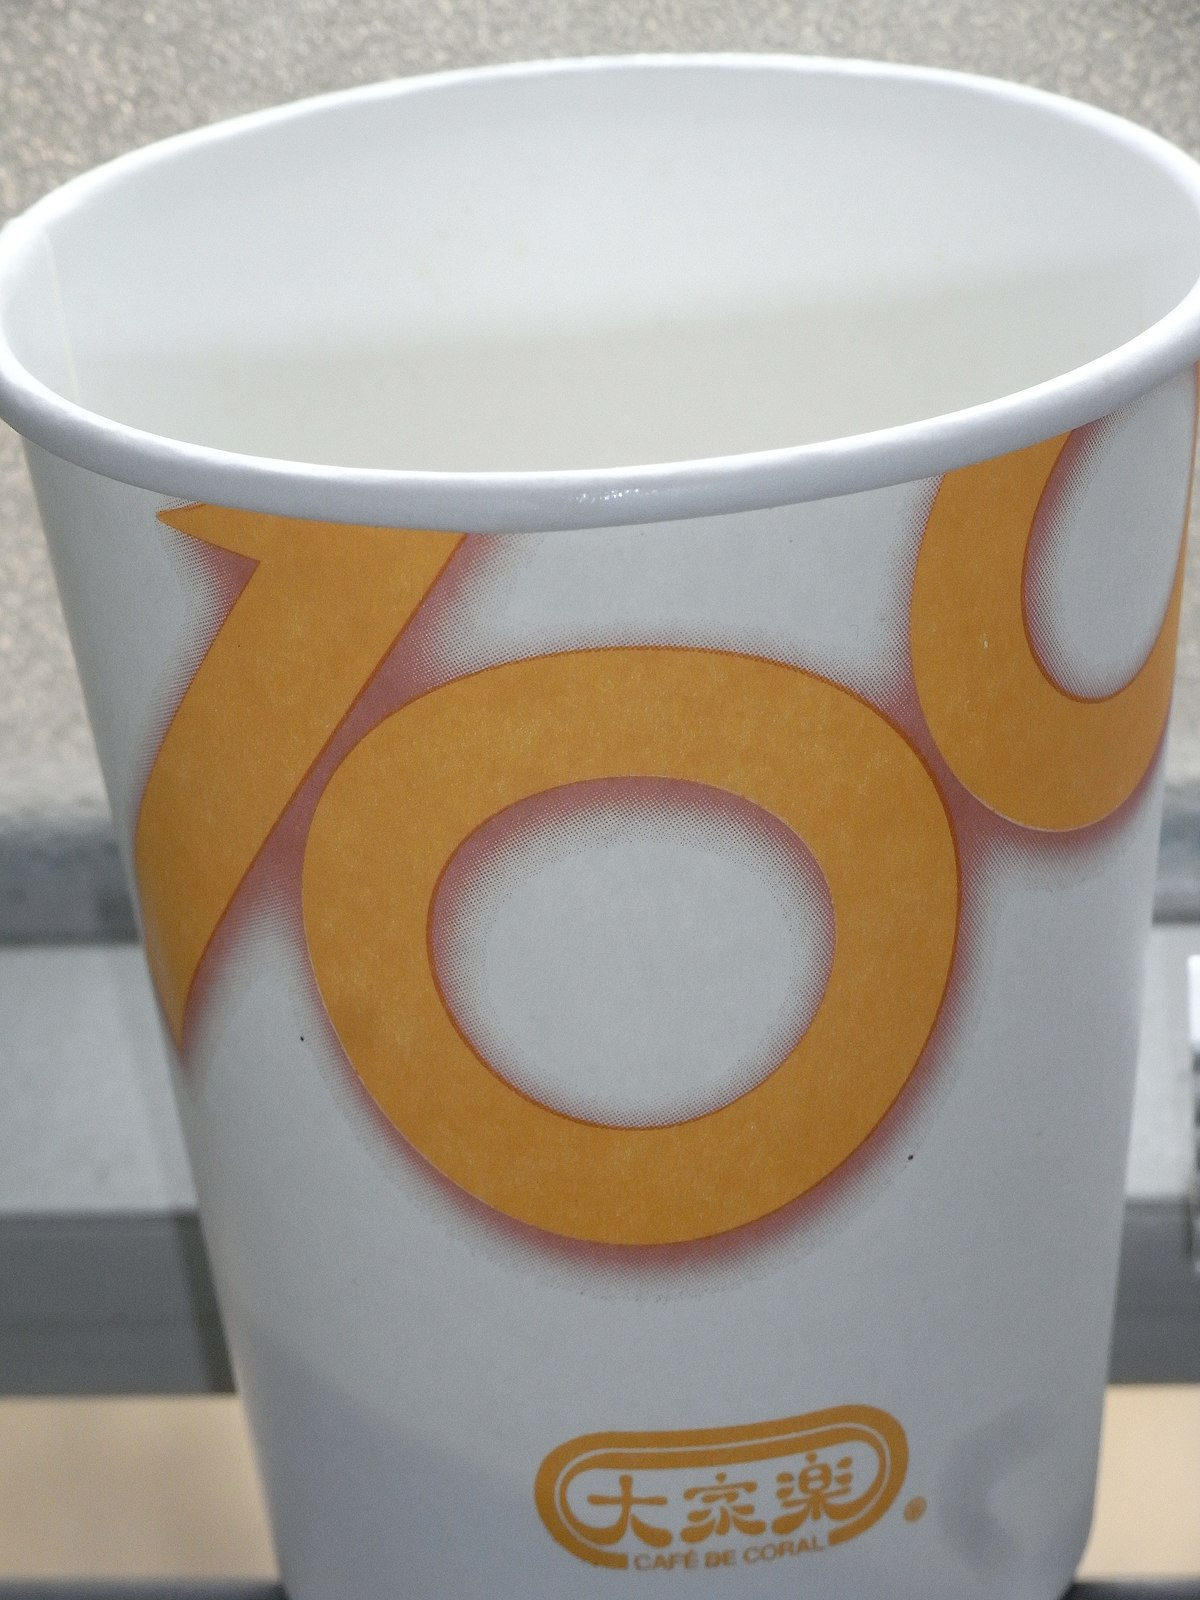 Paper cup - Simple English Wikipedia, the free encyclopedia - photo#38